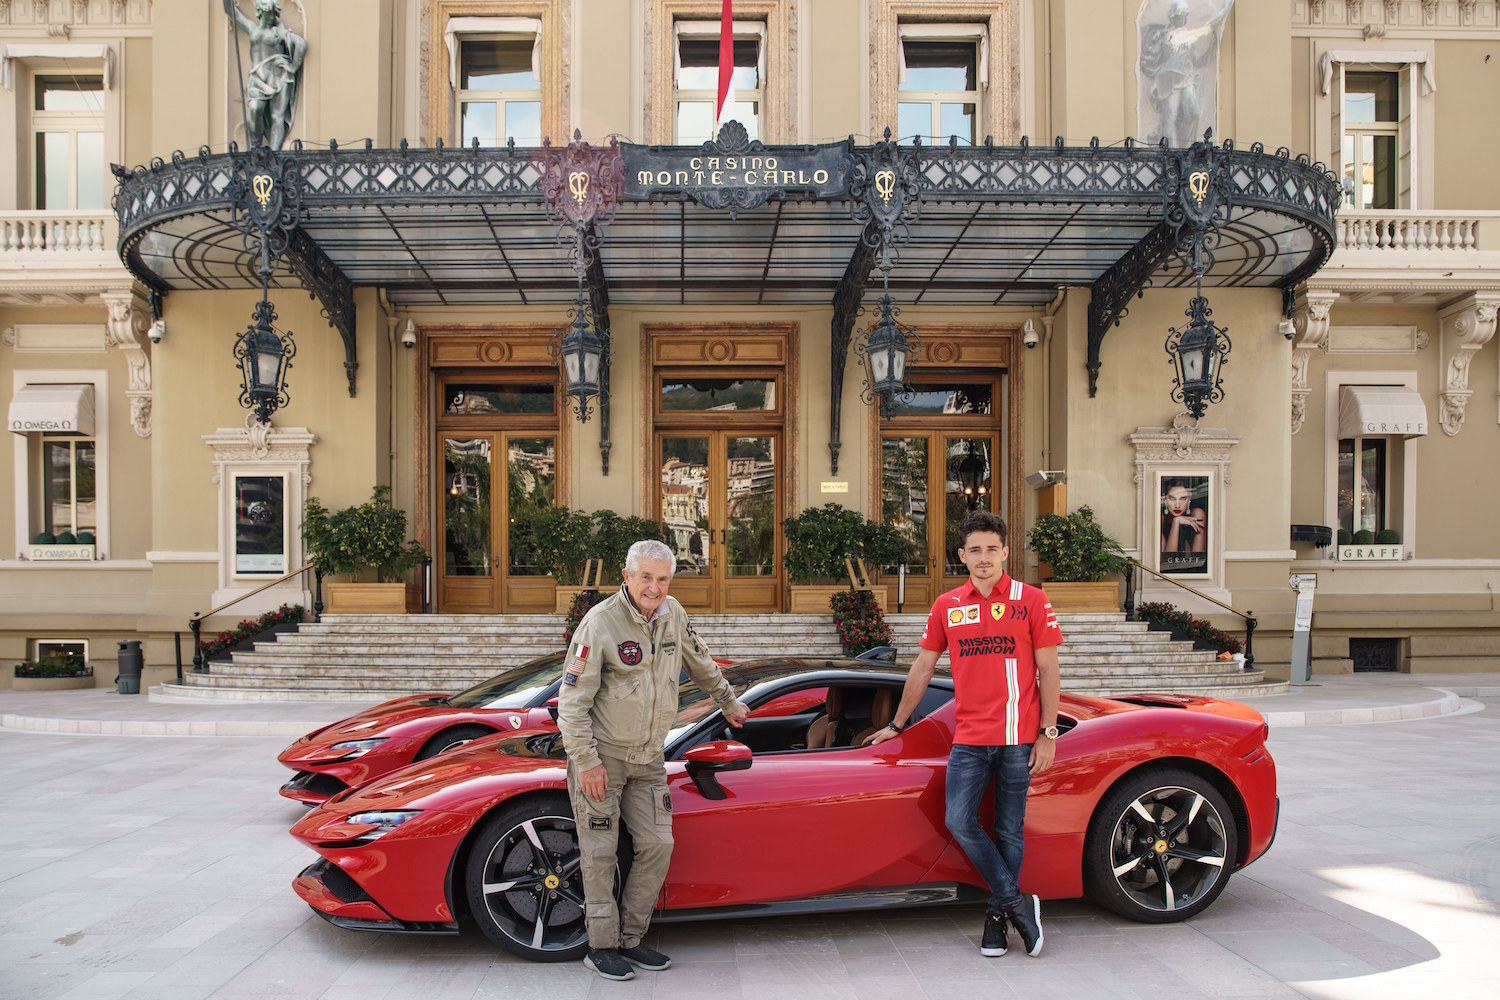 Le Grand Rendezvous The Cinematic Debut Of The Ferrari Sf90 Stradale